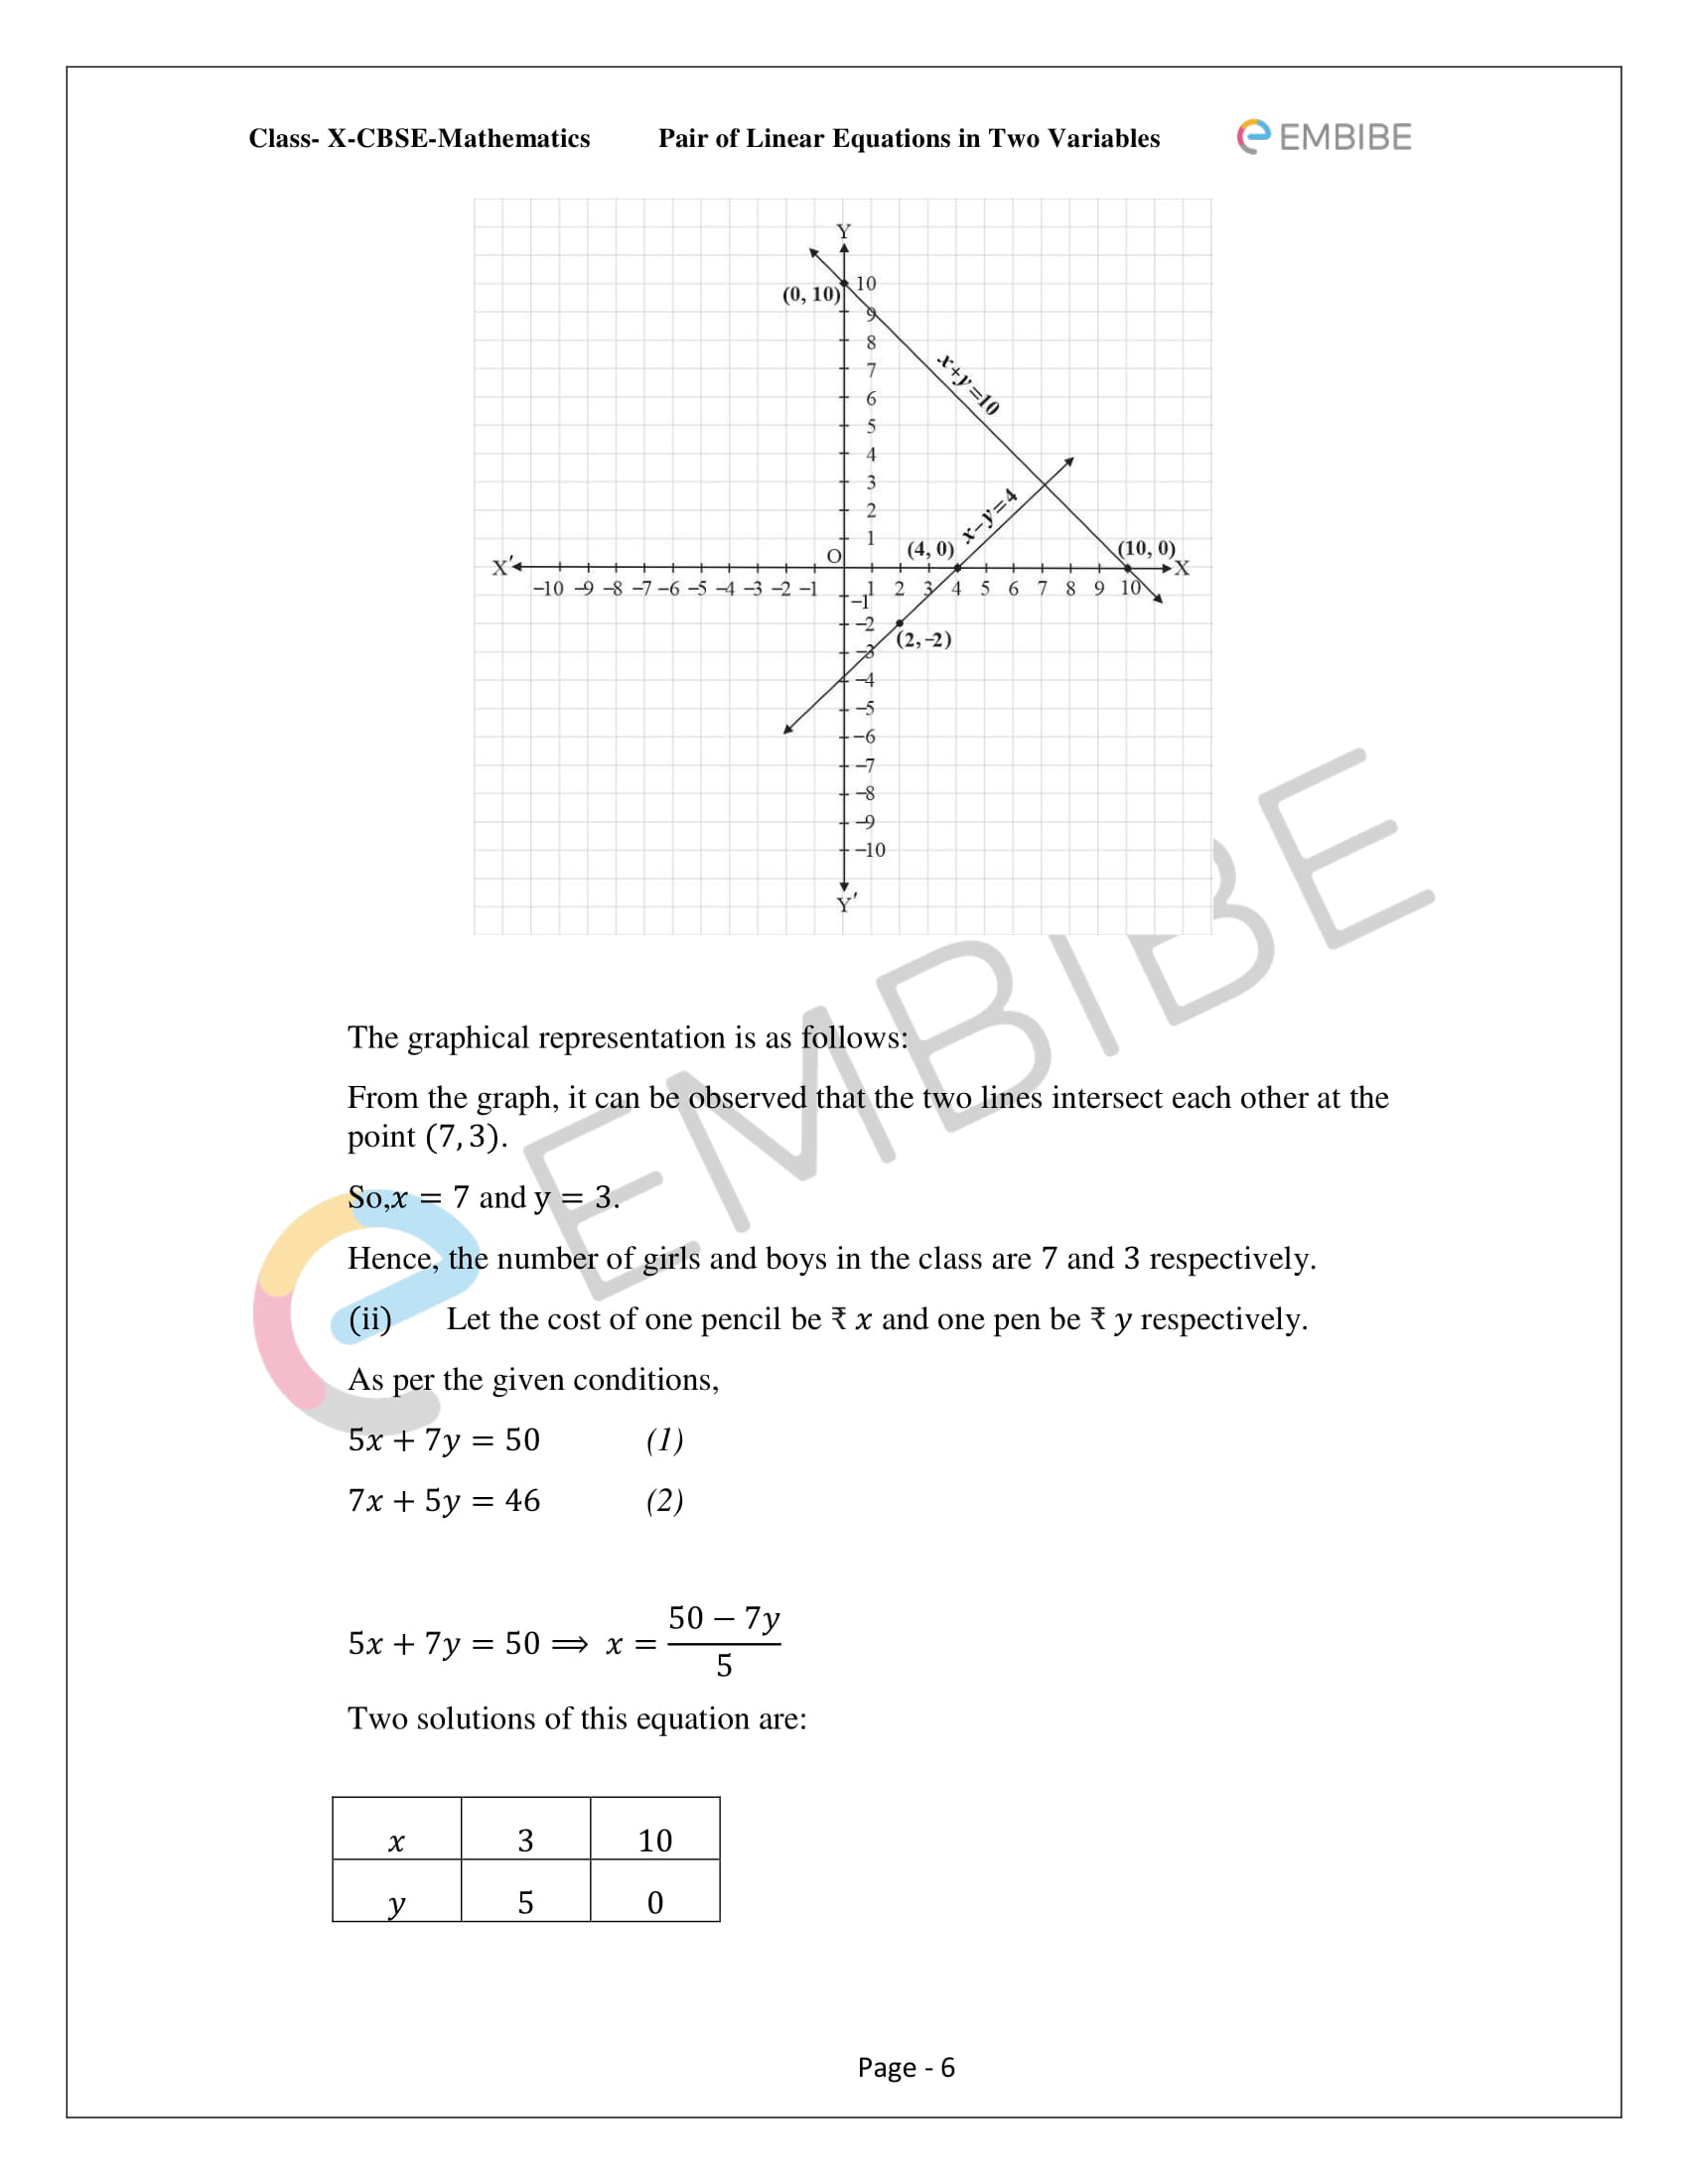 CBSE NCERT Solutions For Class 10 Maths Chapter 3 - Pair of Linear Equations In Two Variables - 6